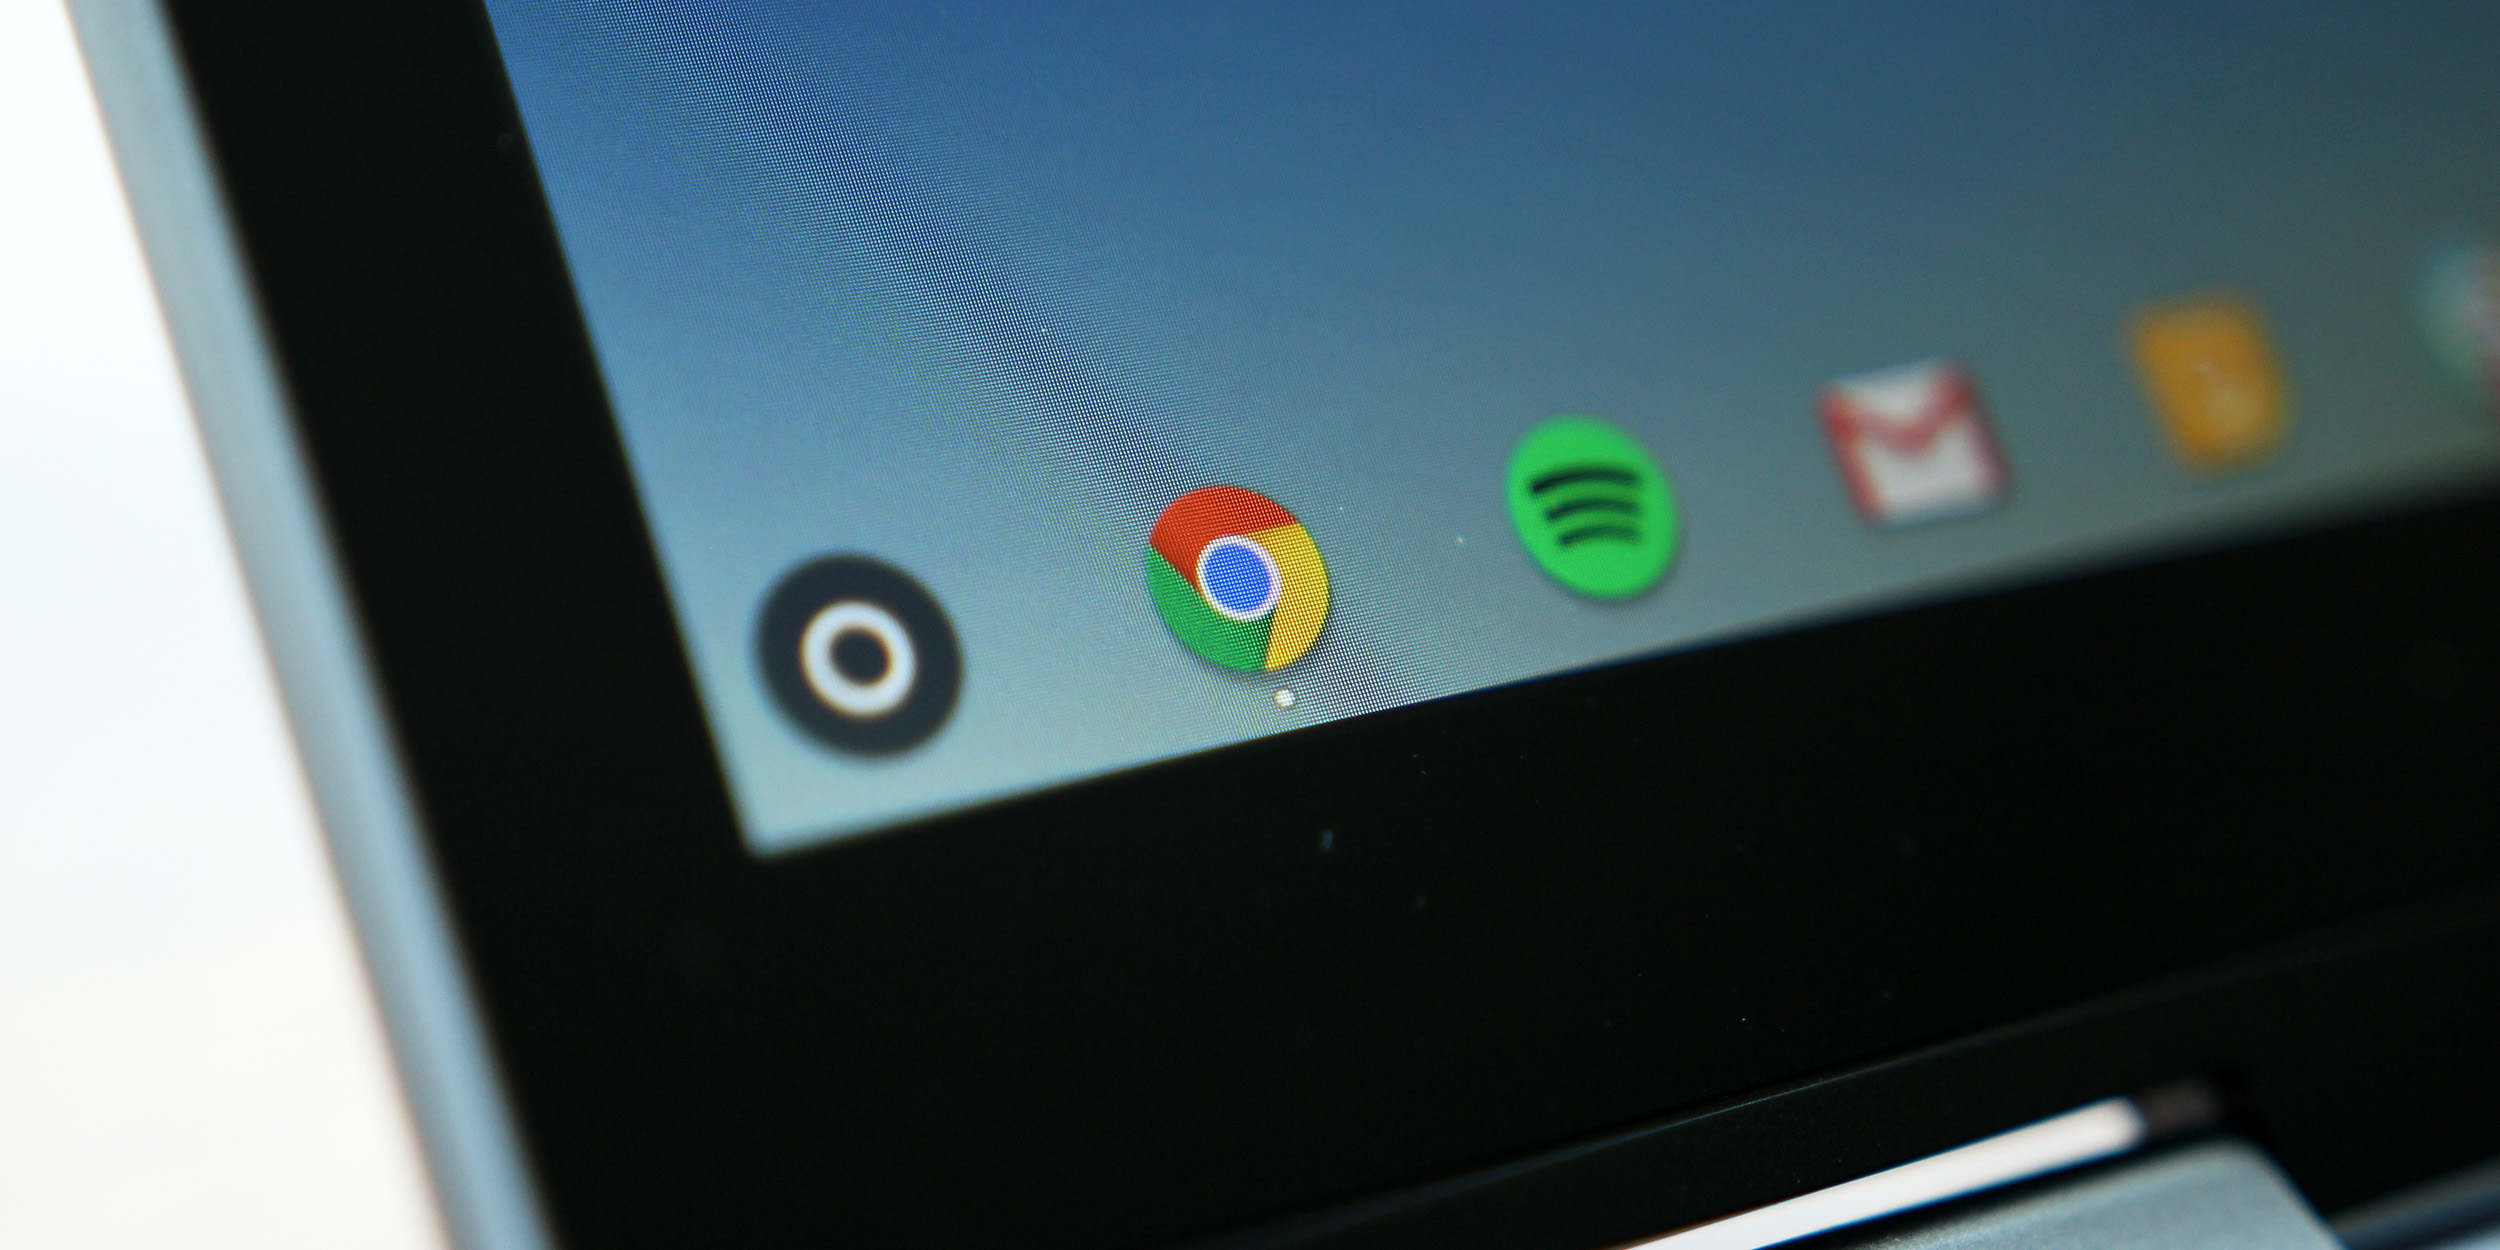 Chrome will warn users ahead of Flash Player's deprecation, starting in July